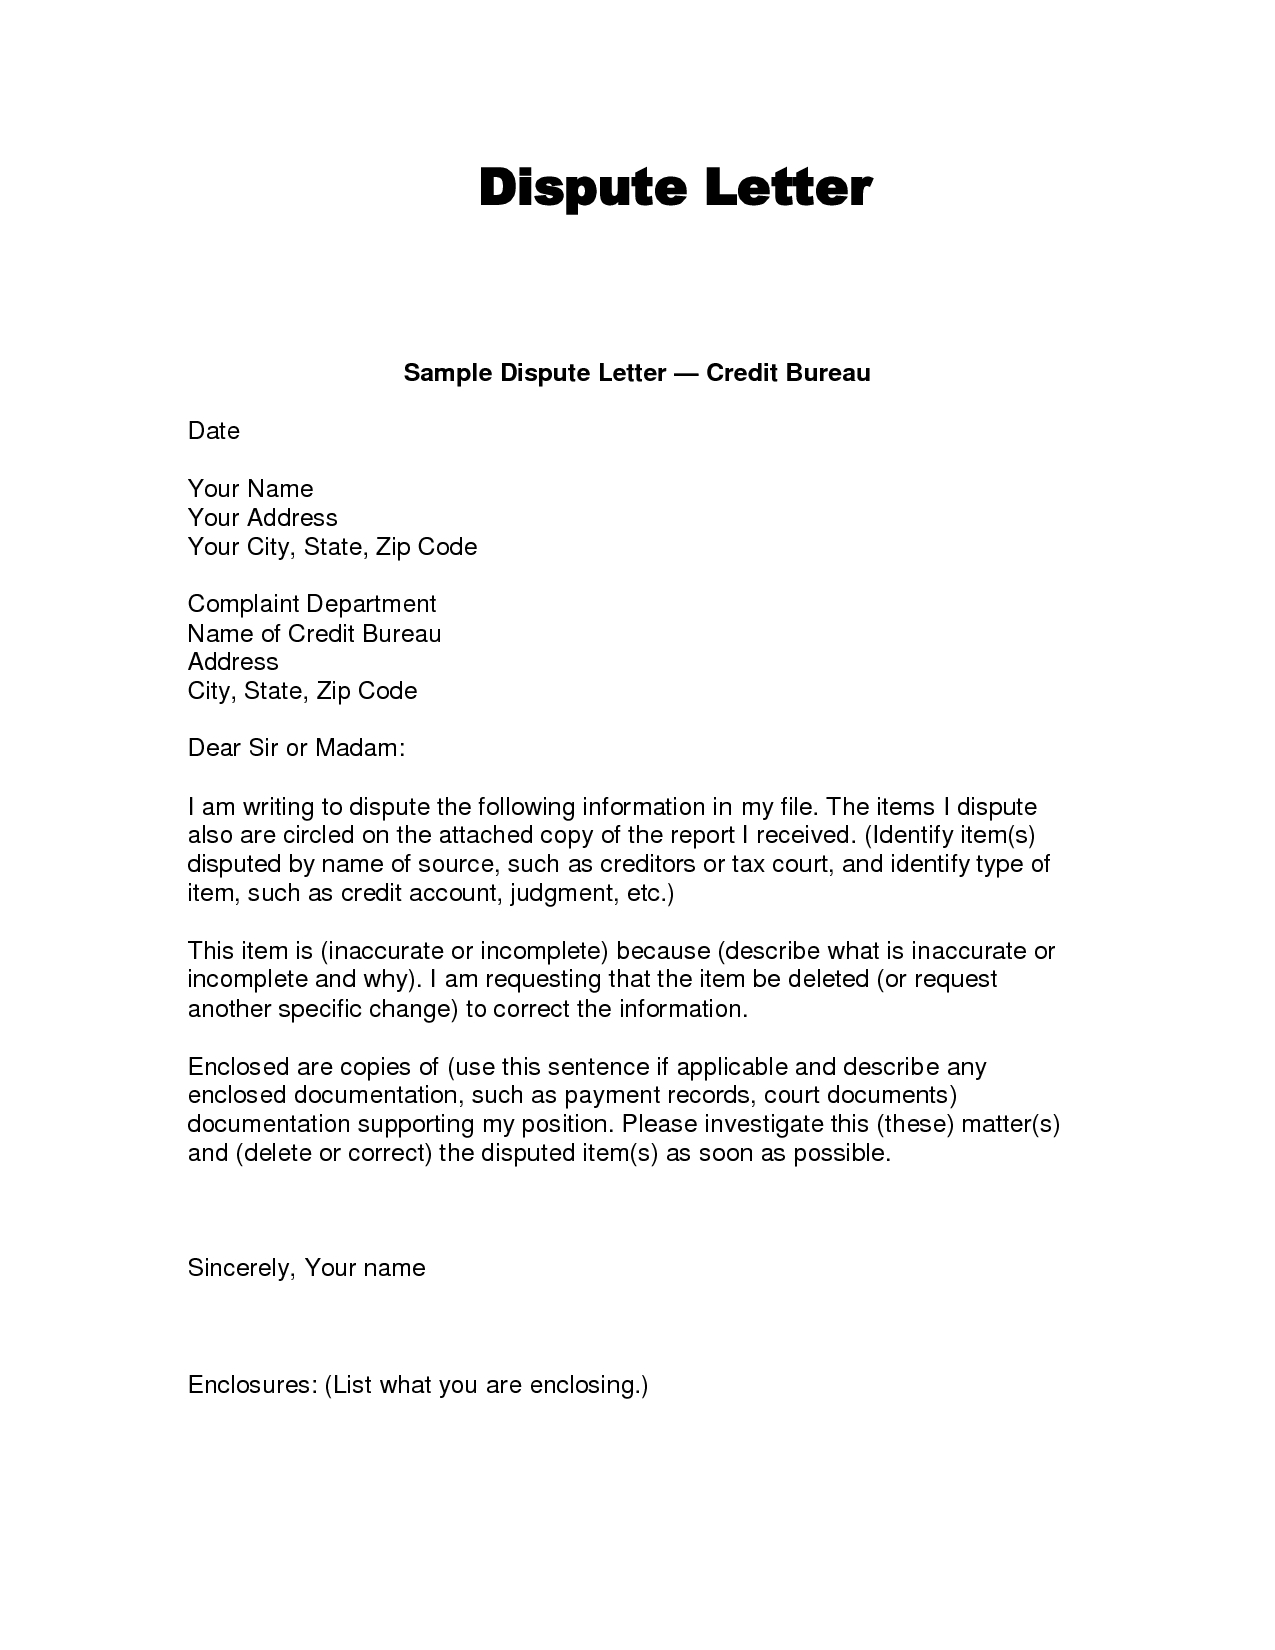 Download: sample letters for dispute resolution.